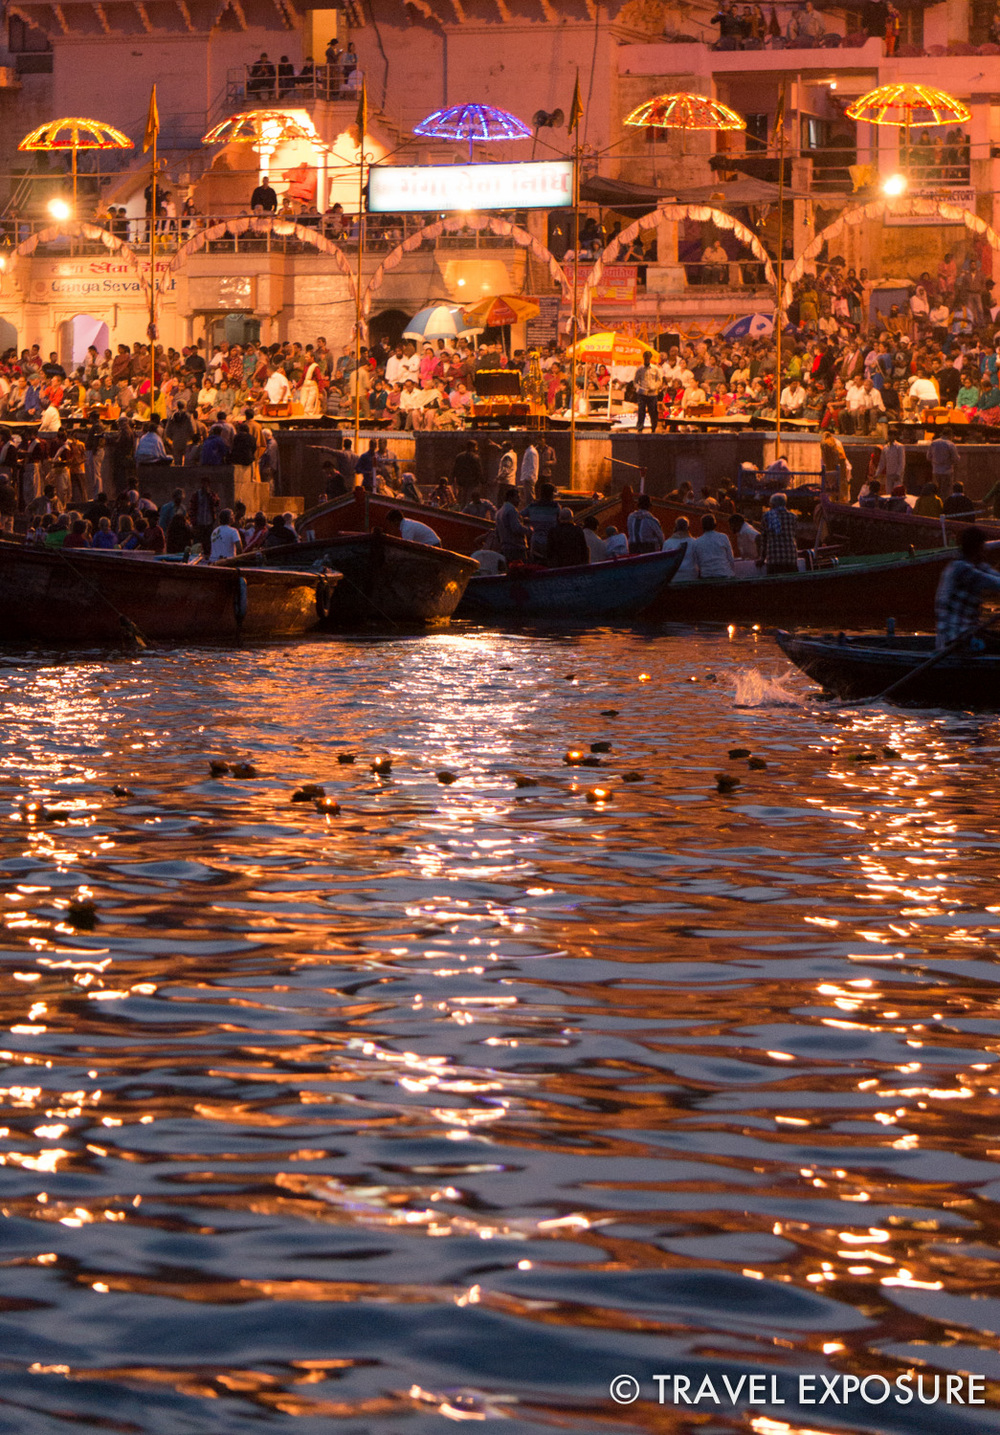 The evening ceremony is performed every sunset as an offering to Lord Shiva and the Goddess Ganga of the Ganges river.Saffron robed scholars wave incense and flaming lamps synchronized to rhythmic chants and music.